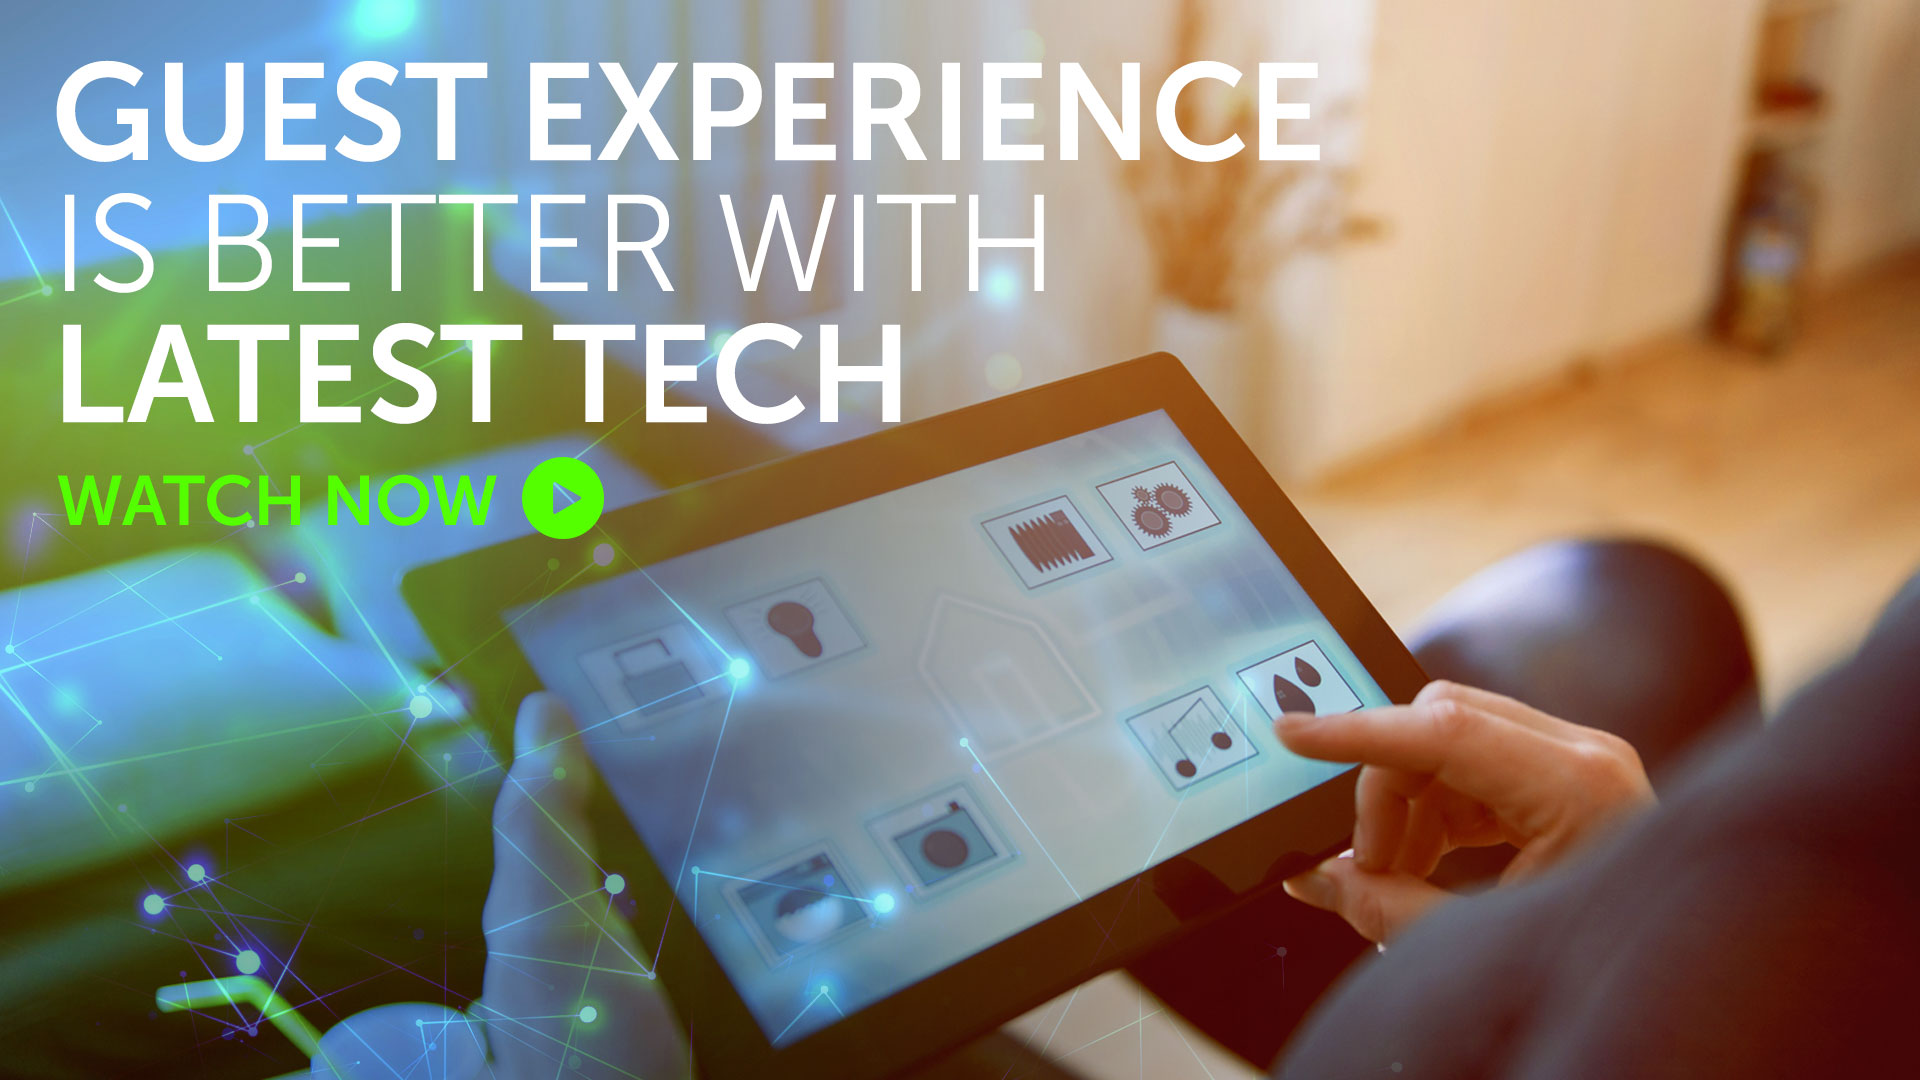 Briefing: Guest experience is better with latest tech